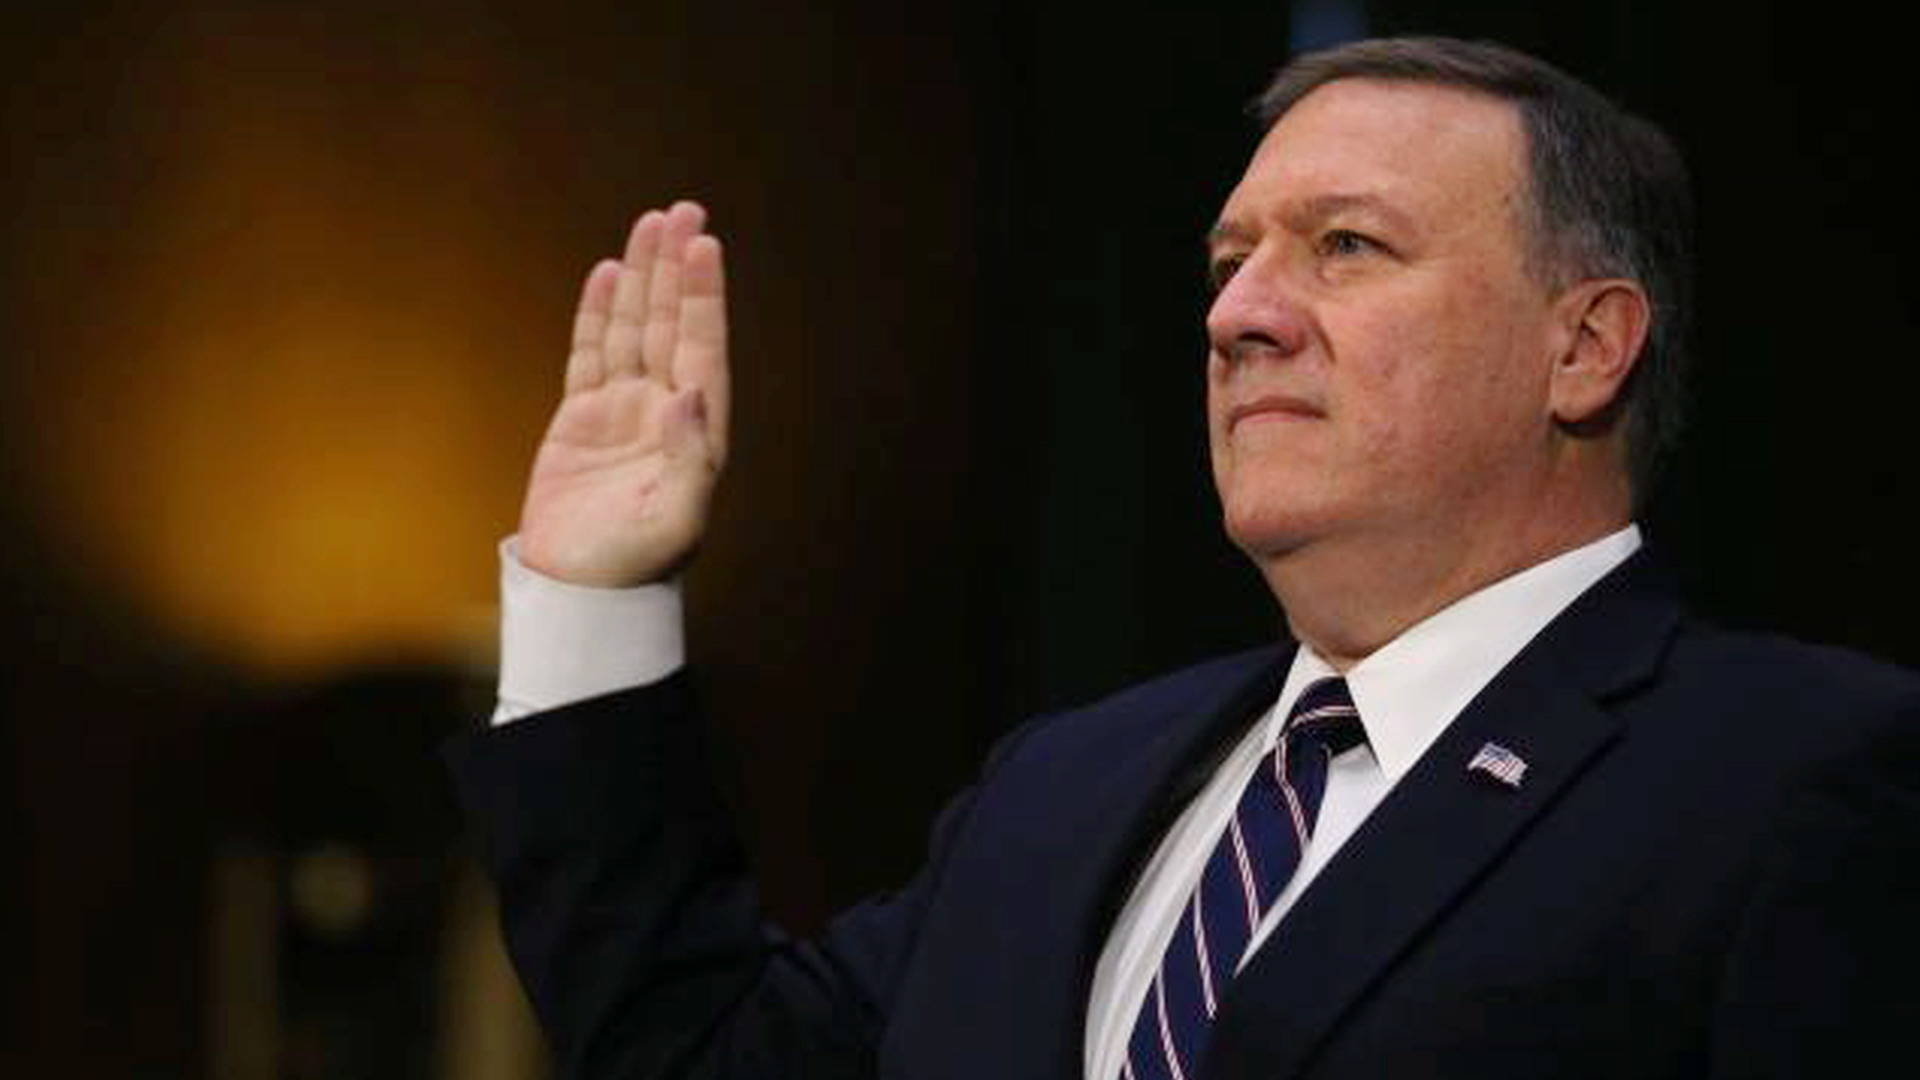 torture democracy now h06 pompeo hearing